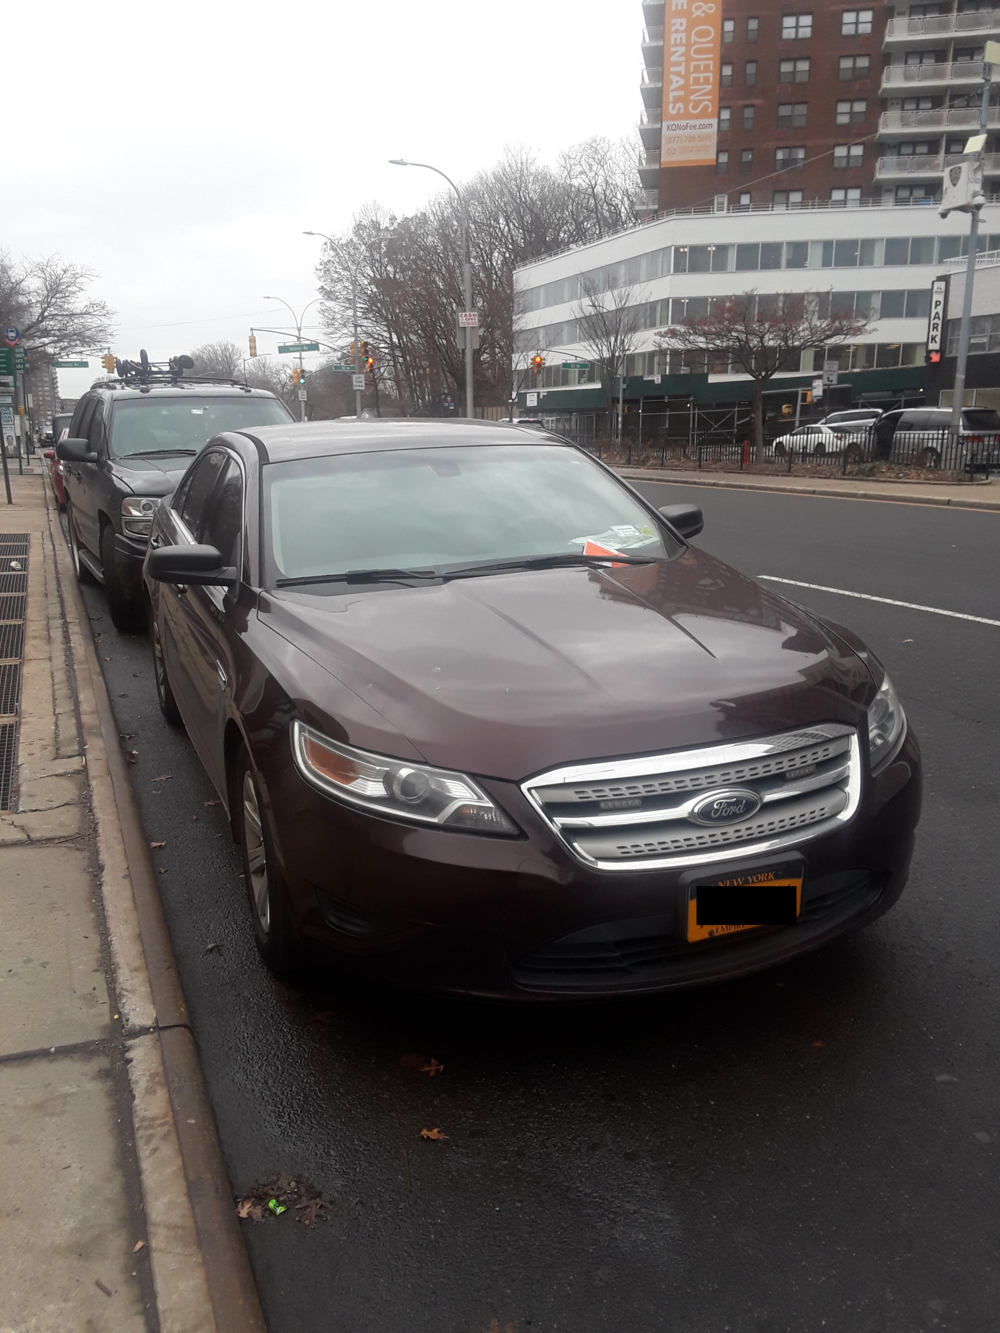 After the  Eagle  asked the Mayor's Office about city employees taking over NYP Parking Zones, the same burgundy car that parked on the Queens Boulevard median on Dec. 11 without a ticket parked in the NYP Parking Zone on Dec. 14 and received a ticket.